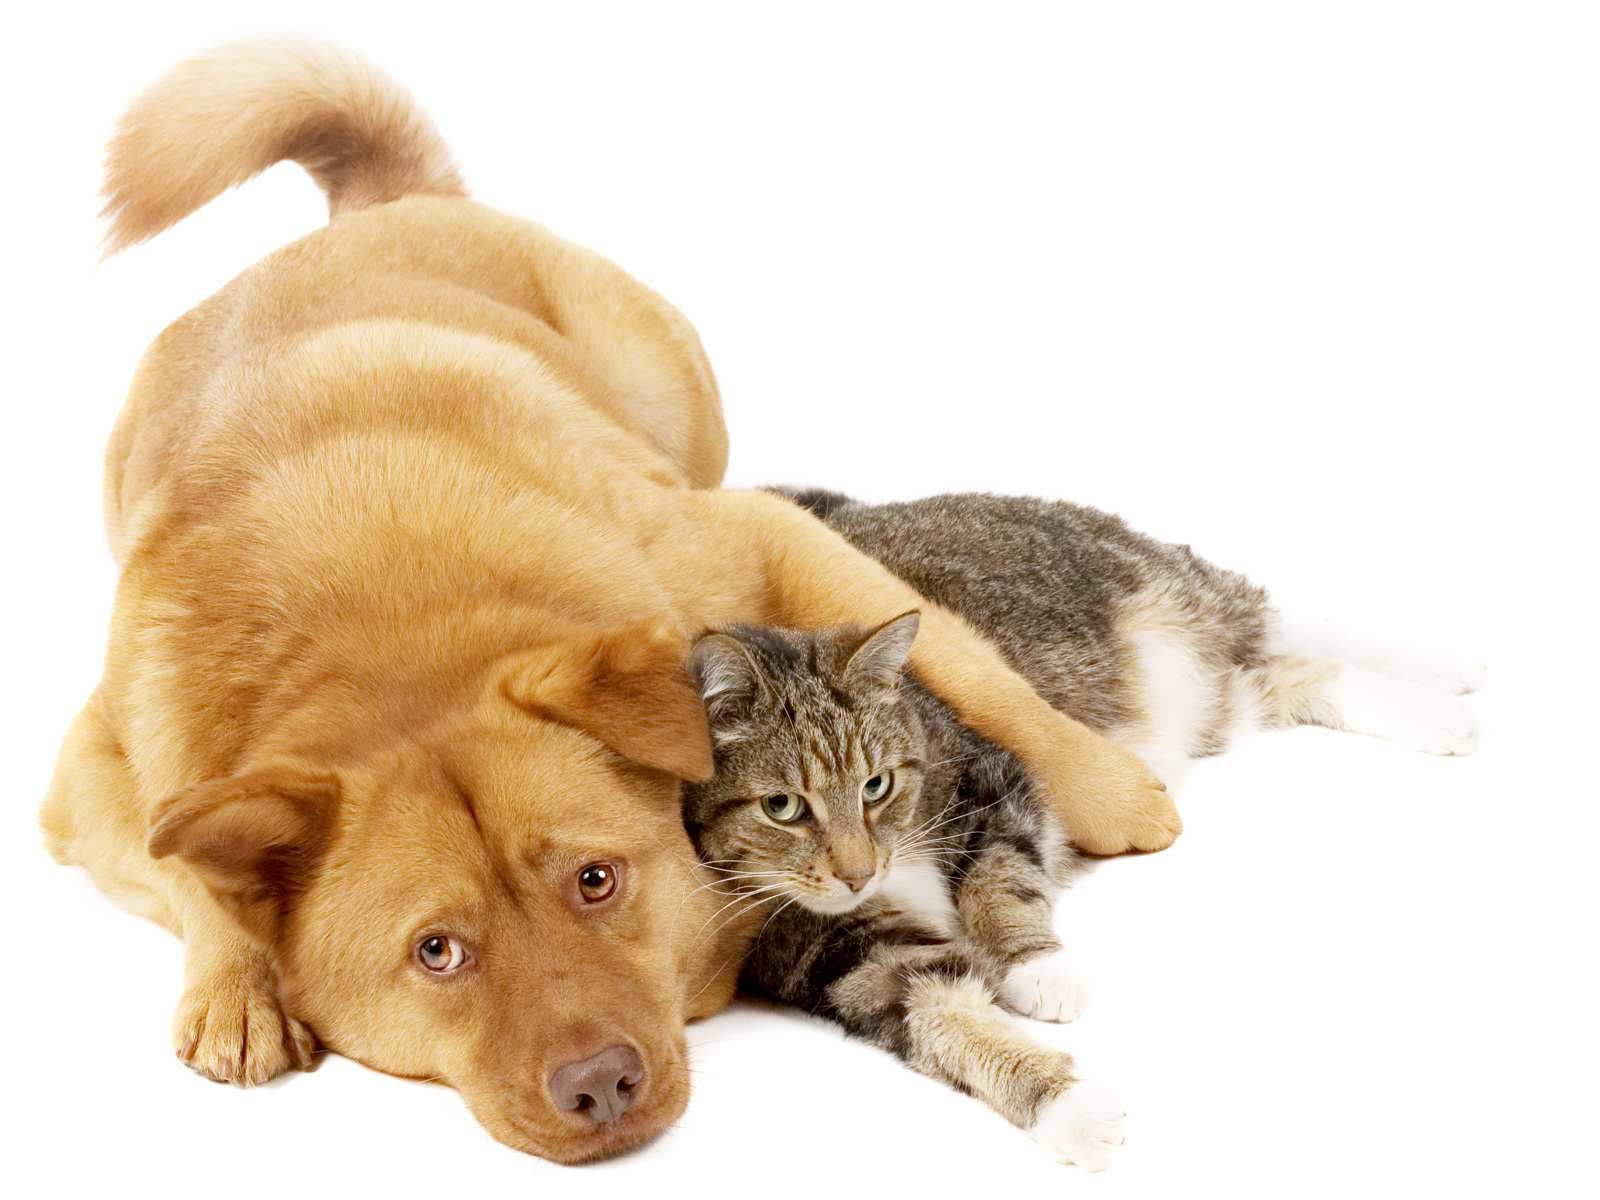 Dog_And_Cat_On_White_Background_freecomputerdesktopwallpaper_1600